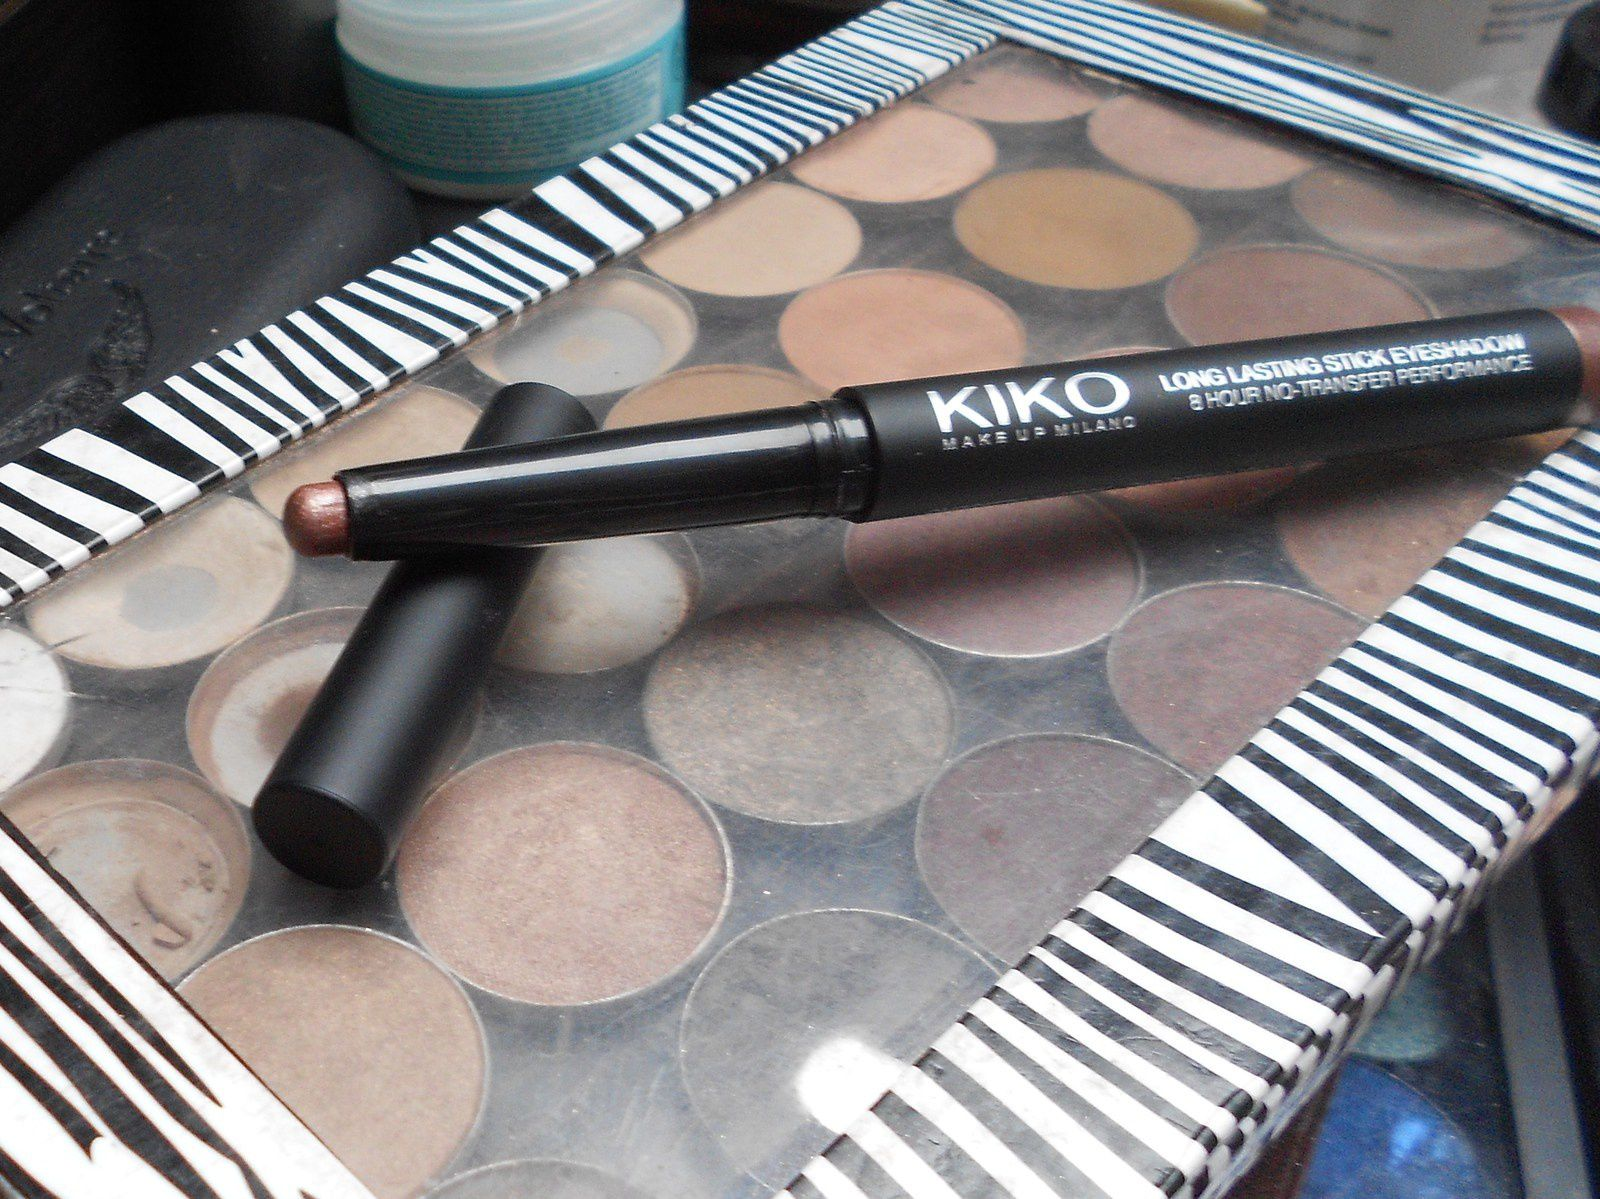 Tuto : Long Lasting by Kiko et MakeupGeek.